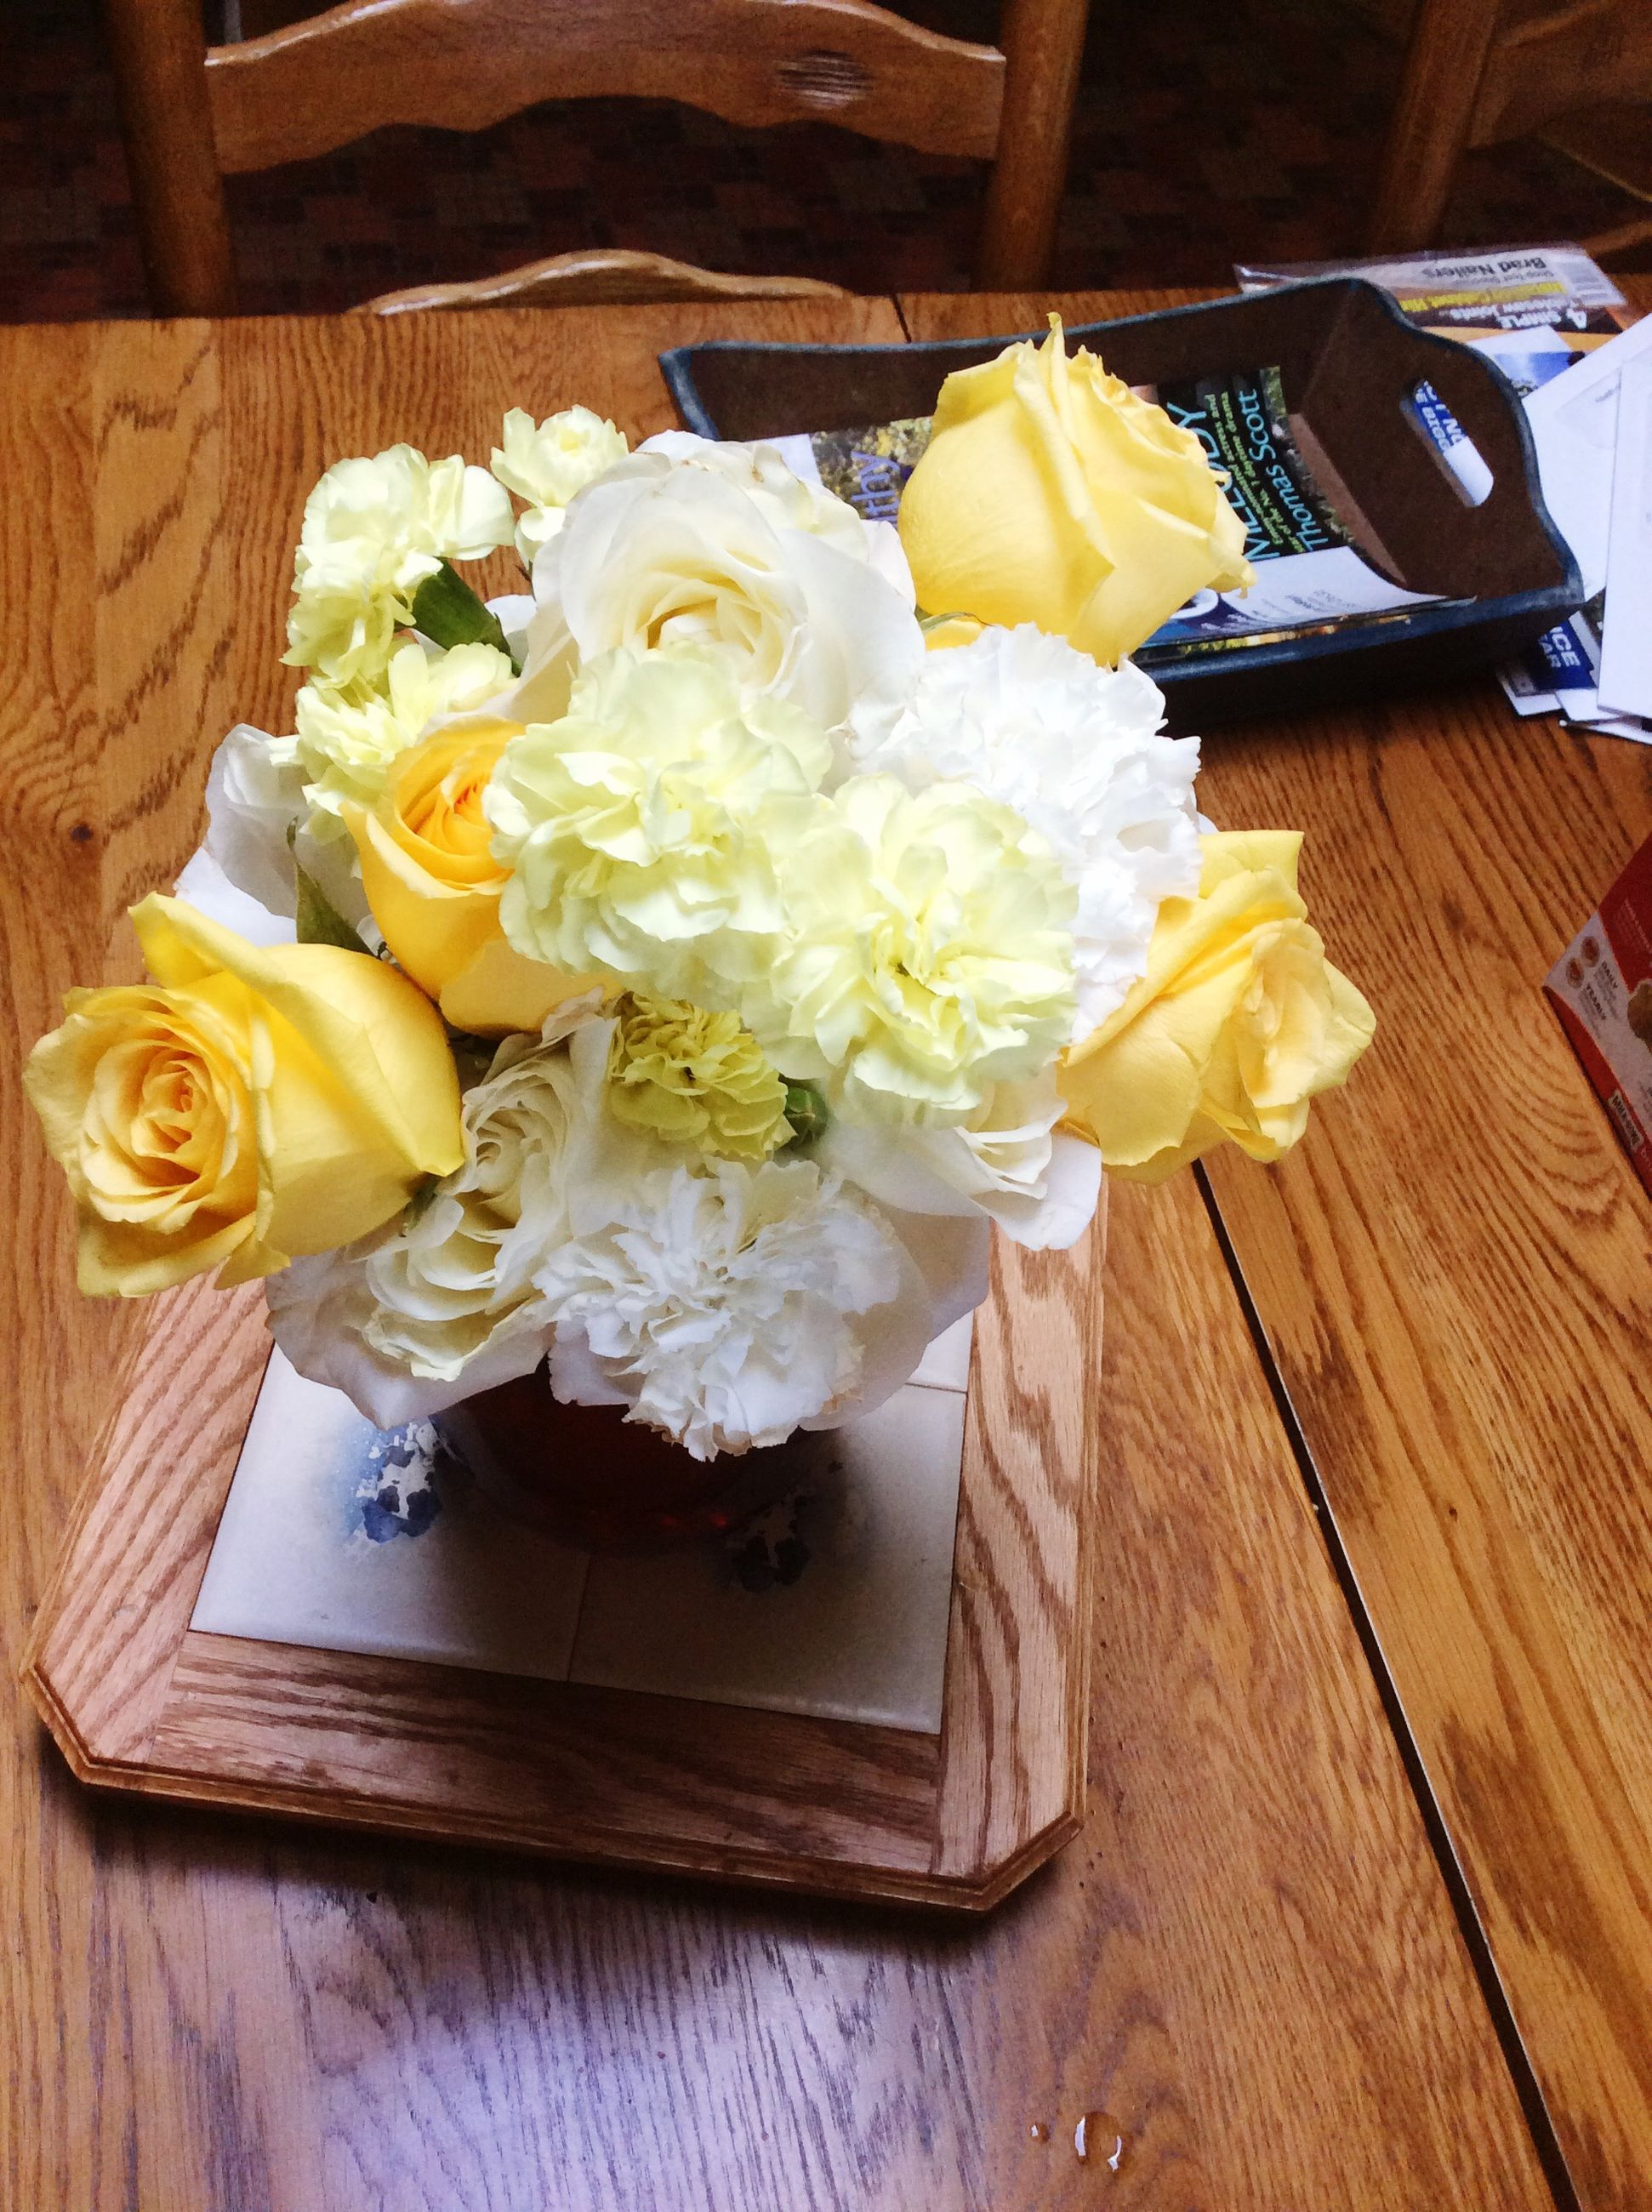 indoors, flower, freshness, table, still life, wood - material, vase, yellow, high angle view, food and drink, food, petal, wooden, flower arrangement, no people, bouquet, close-up, fragility, flower head, rose - flower